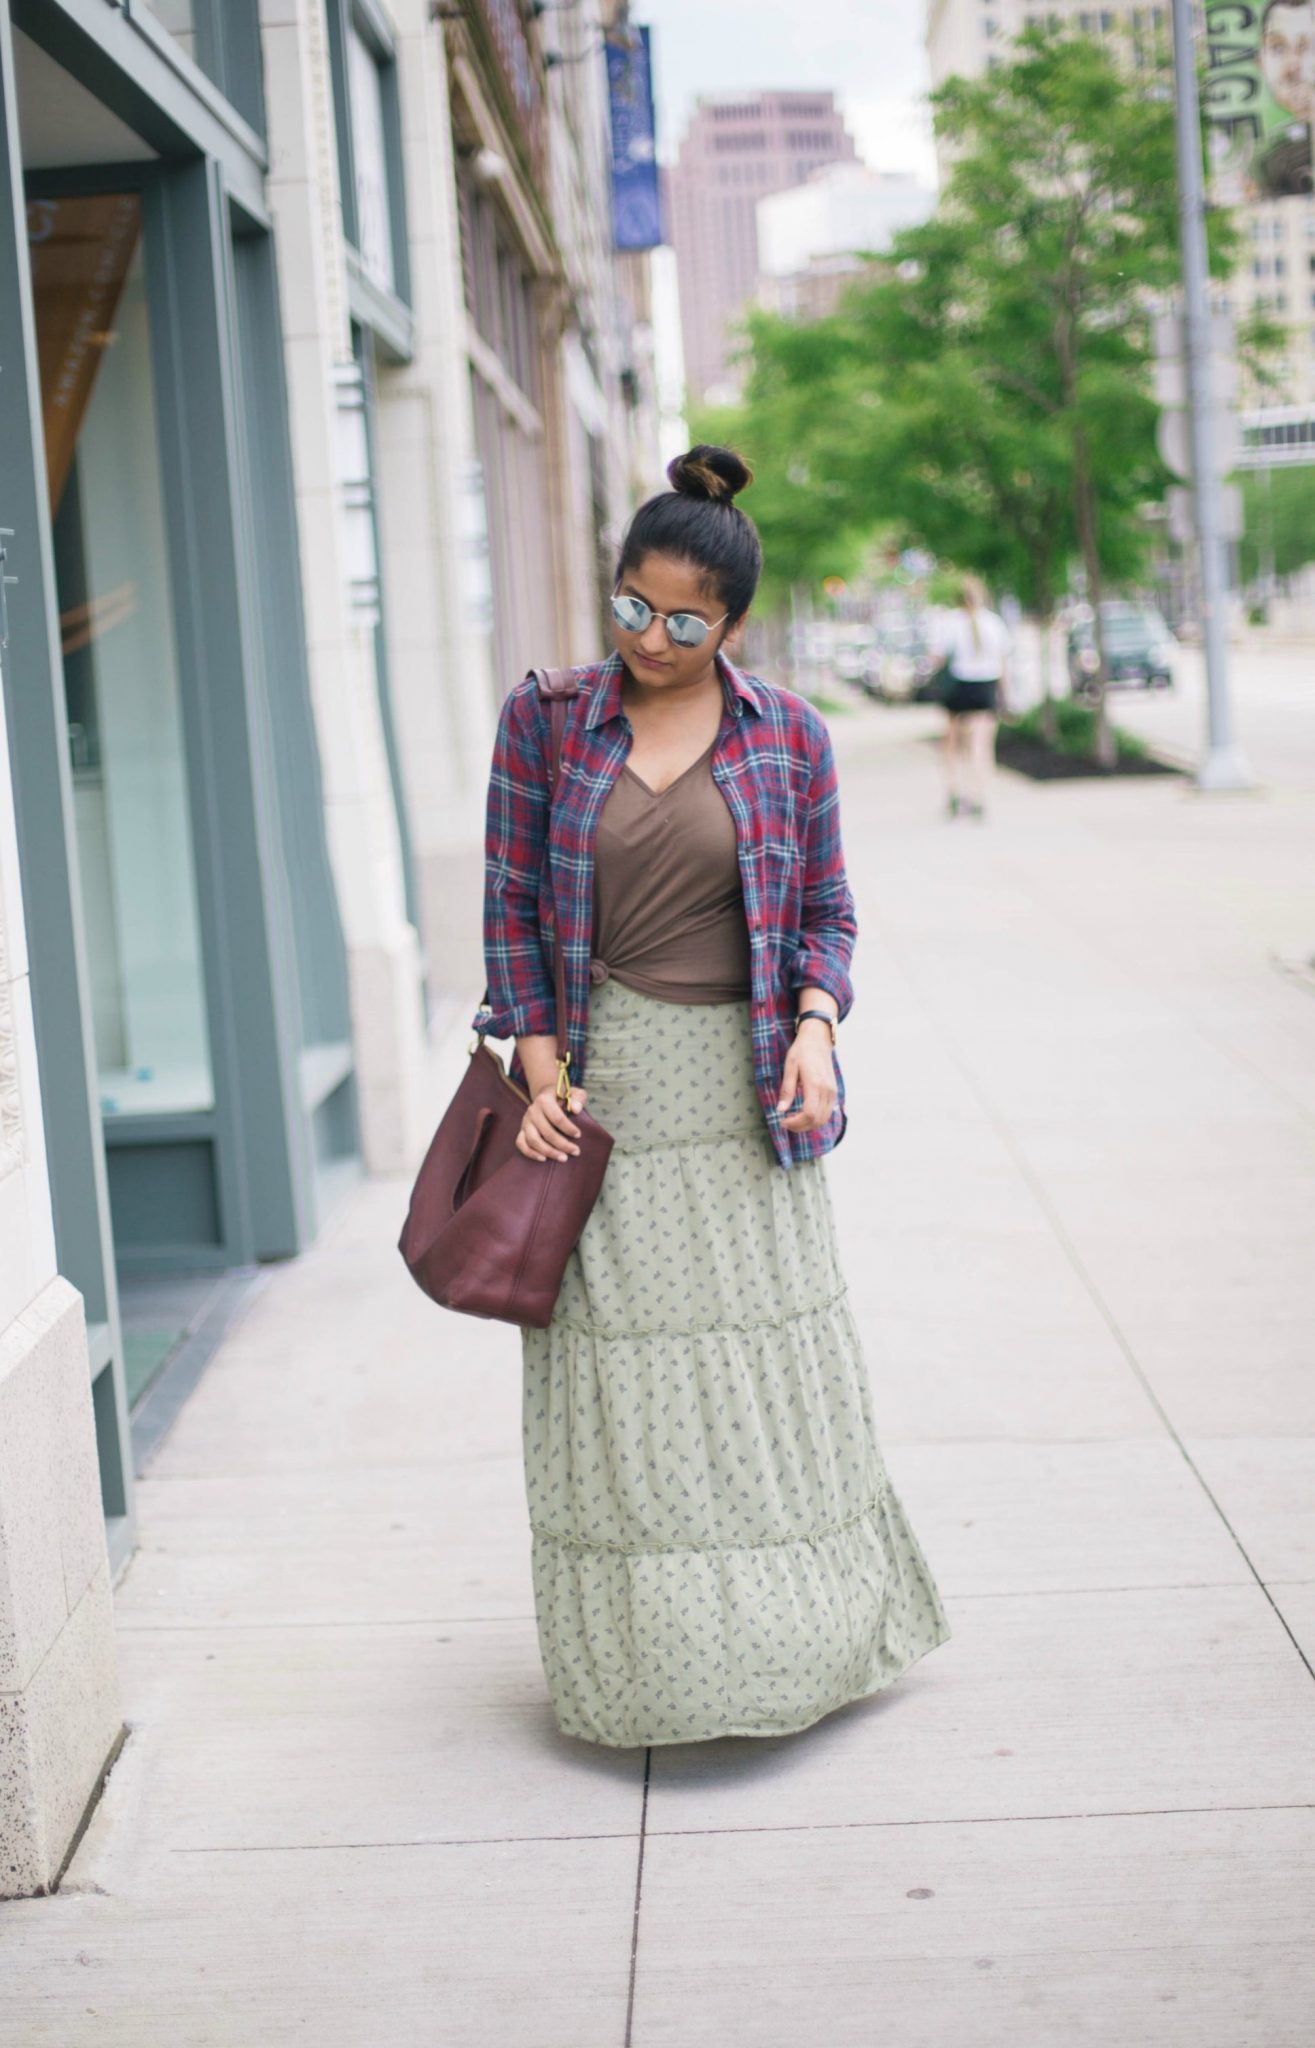 how-to-wear-plaid-shirt-with-maxi-skirt - Maxi Skirts For Petites featured by popular Ohio modest fashion blogger, Dreaming Loud